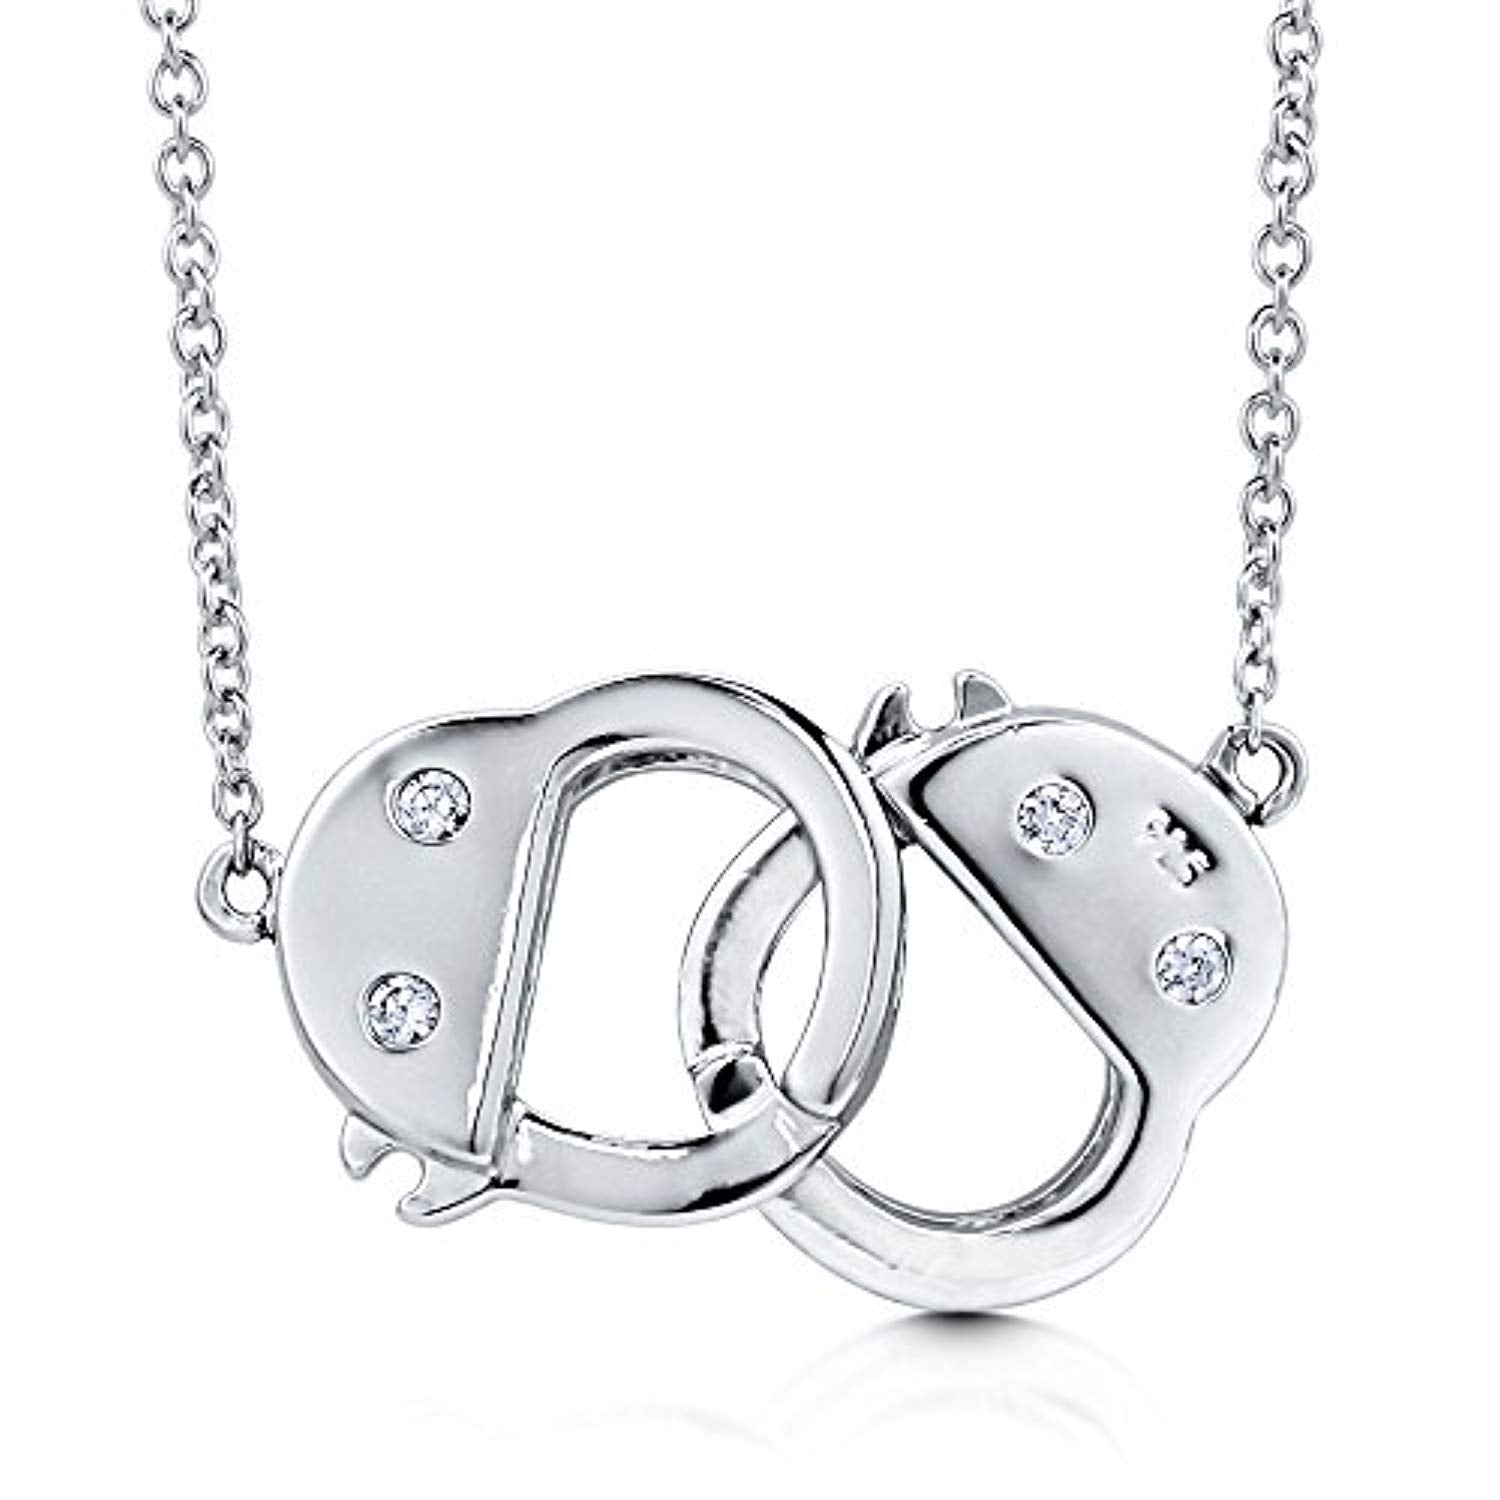 Rhodium Plated Sterling Silver CZ Handcuffs Pendant Necklace